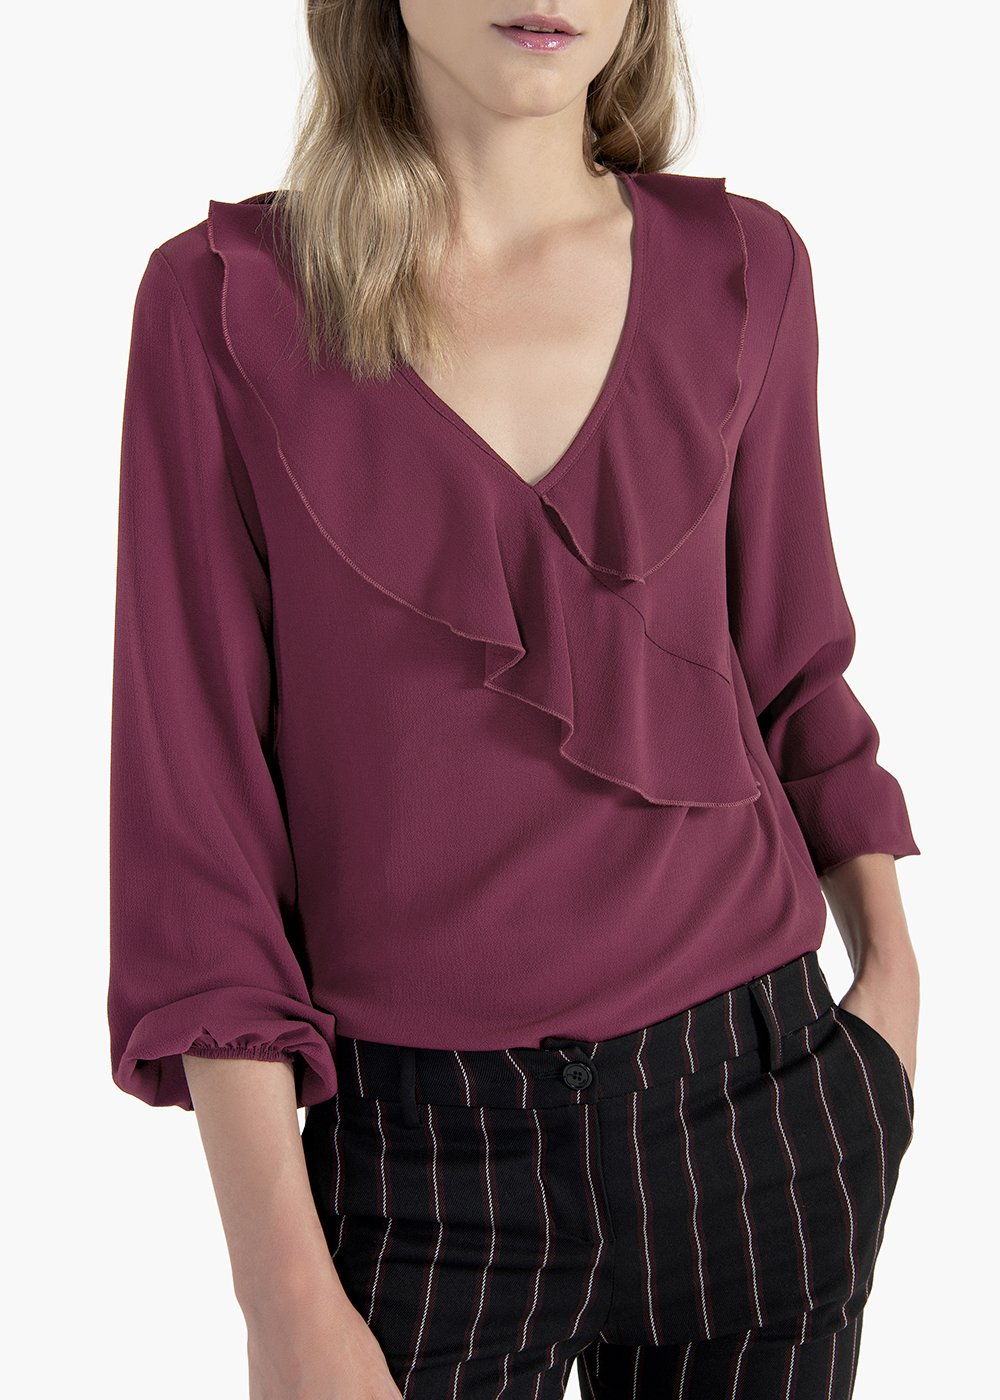 Carmen crêpe t-shirt with puff sleeves - Black cherry - Woman